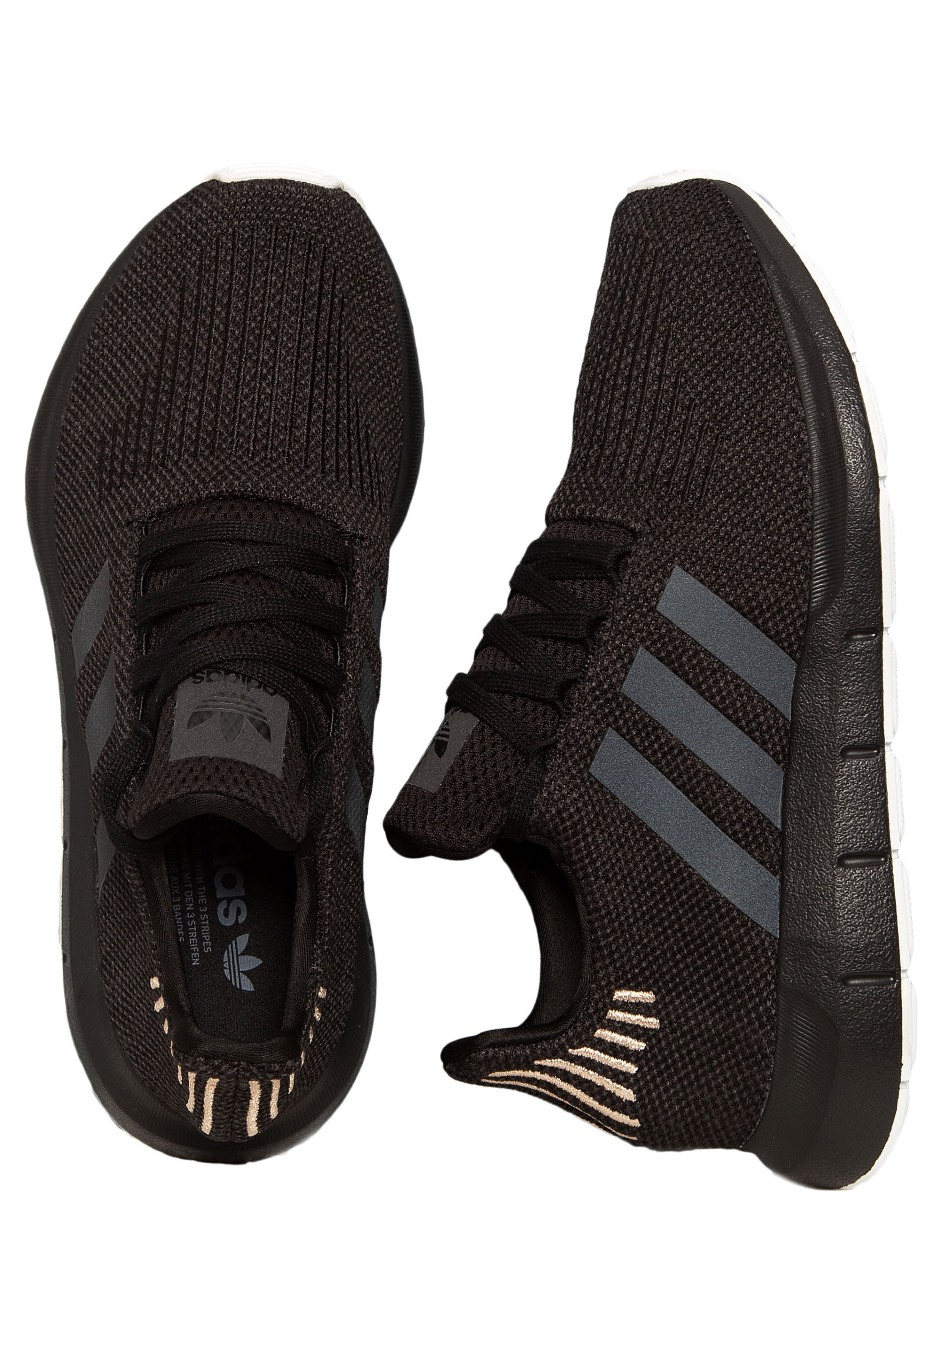 efd5707aaebb76 Adidas - Swift Run W Core Black Carbon Ftwr White - Girl Shoes -  Impericon.com Worldwide